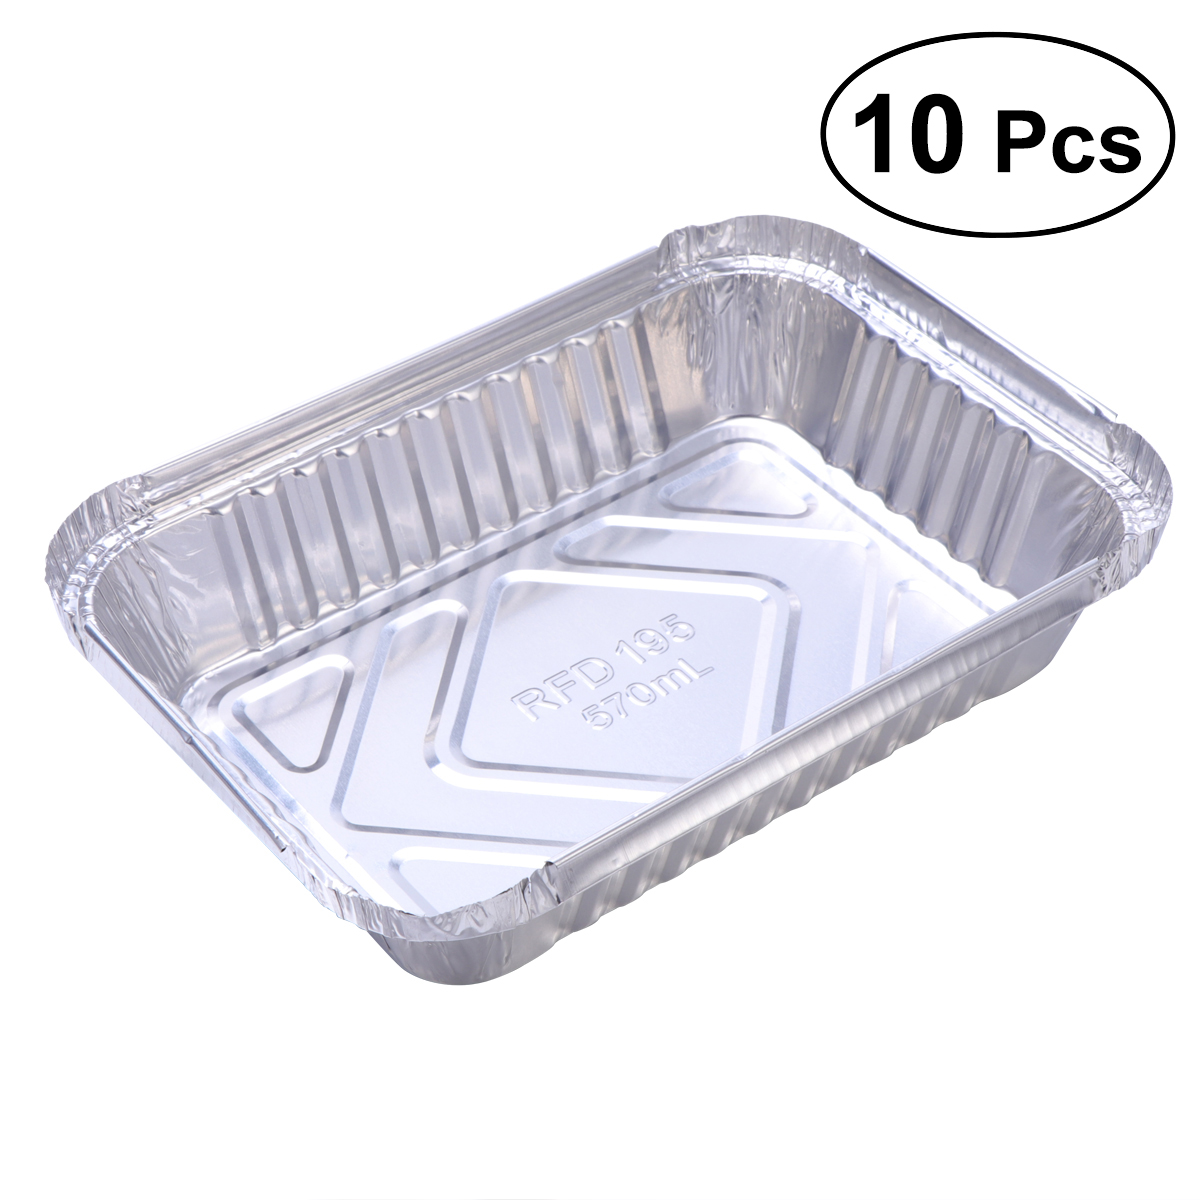 10 Pcs Disposable BBQ Drip Pan Tray Aluminum Foil Tin Liners For Grease Catch Pans Replacement Liner Trays